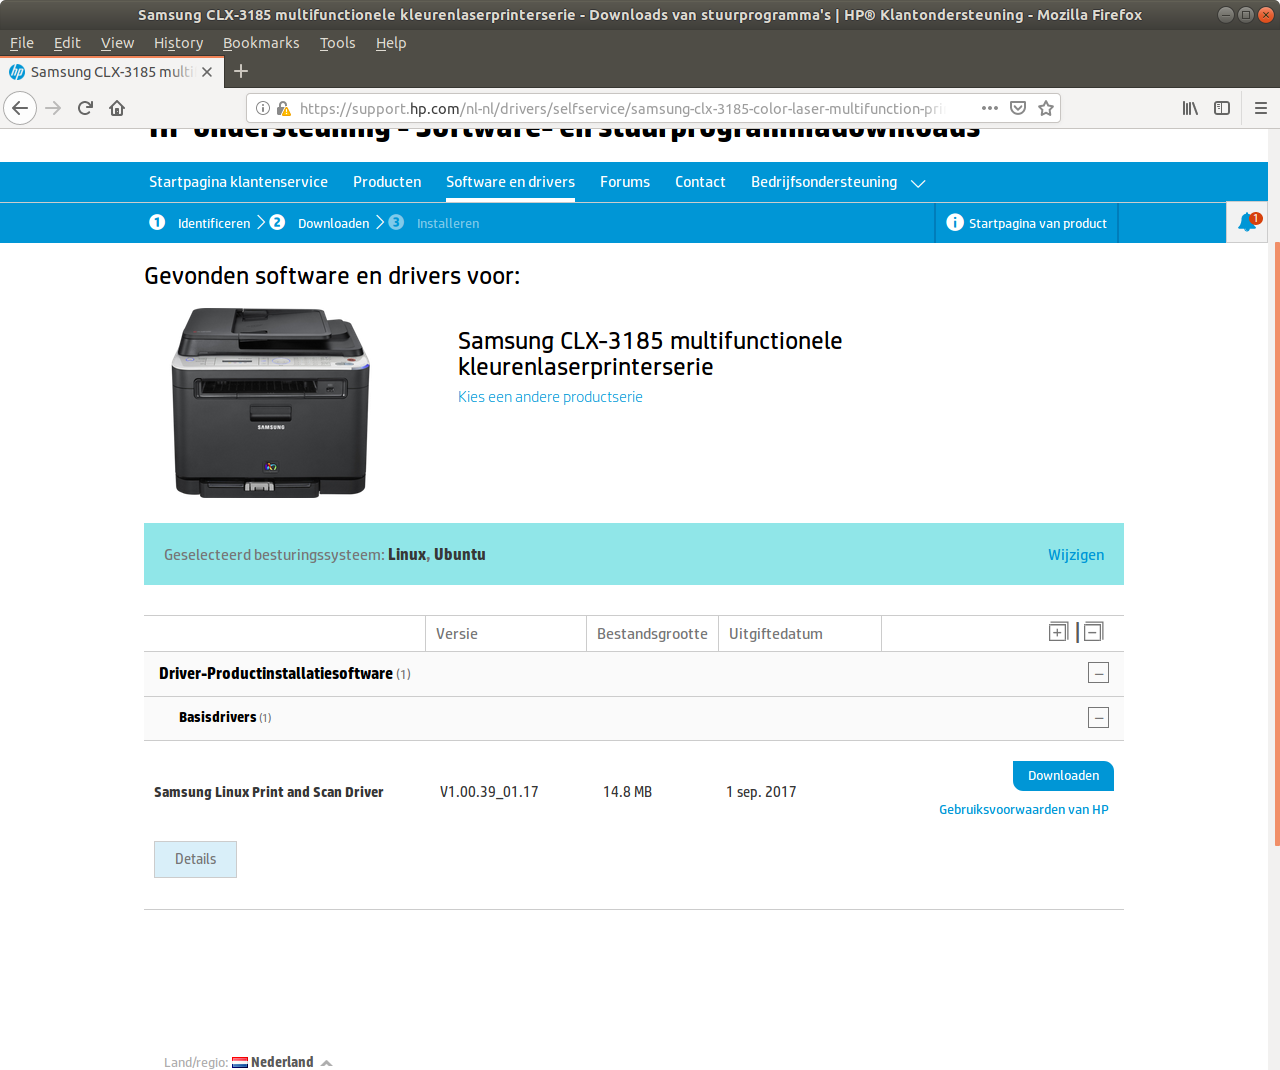 How to install a samsung CLX3185 printer/scanner in Linux